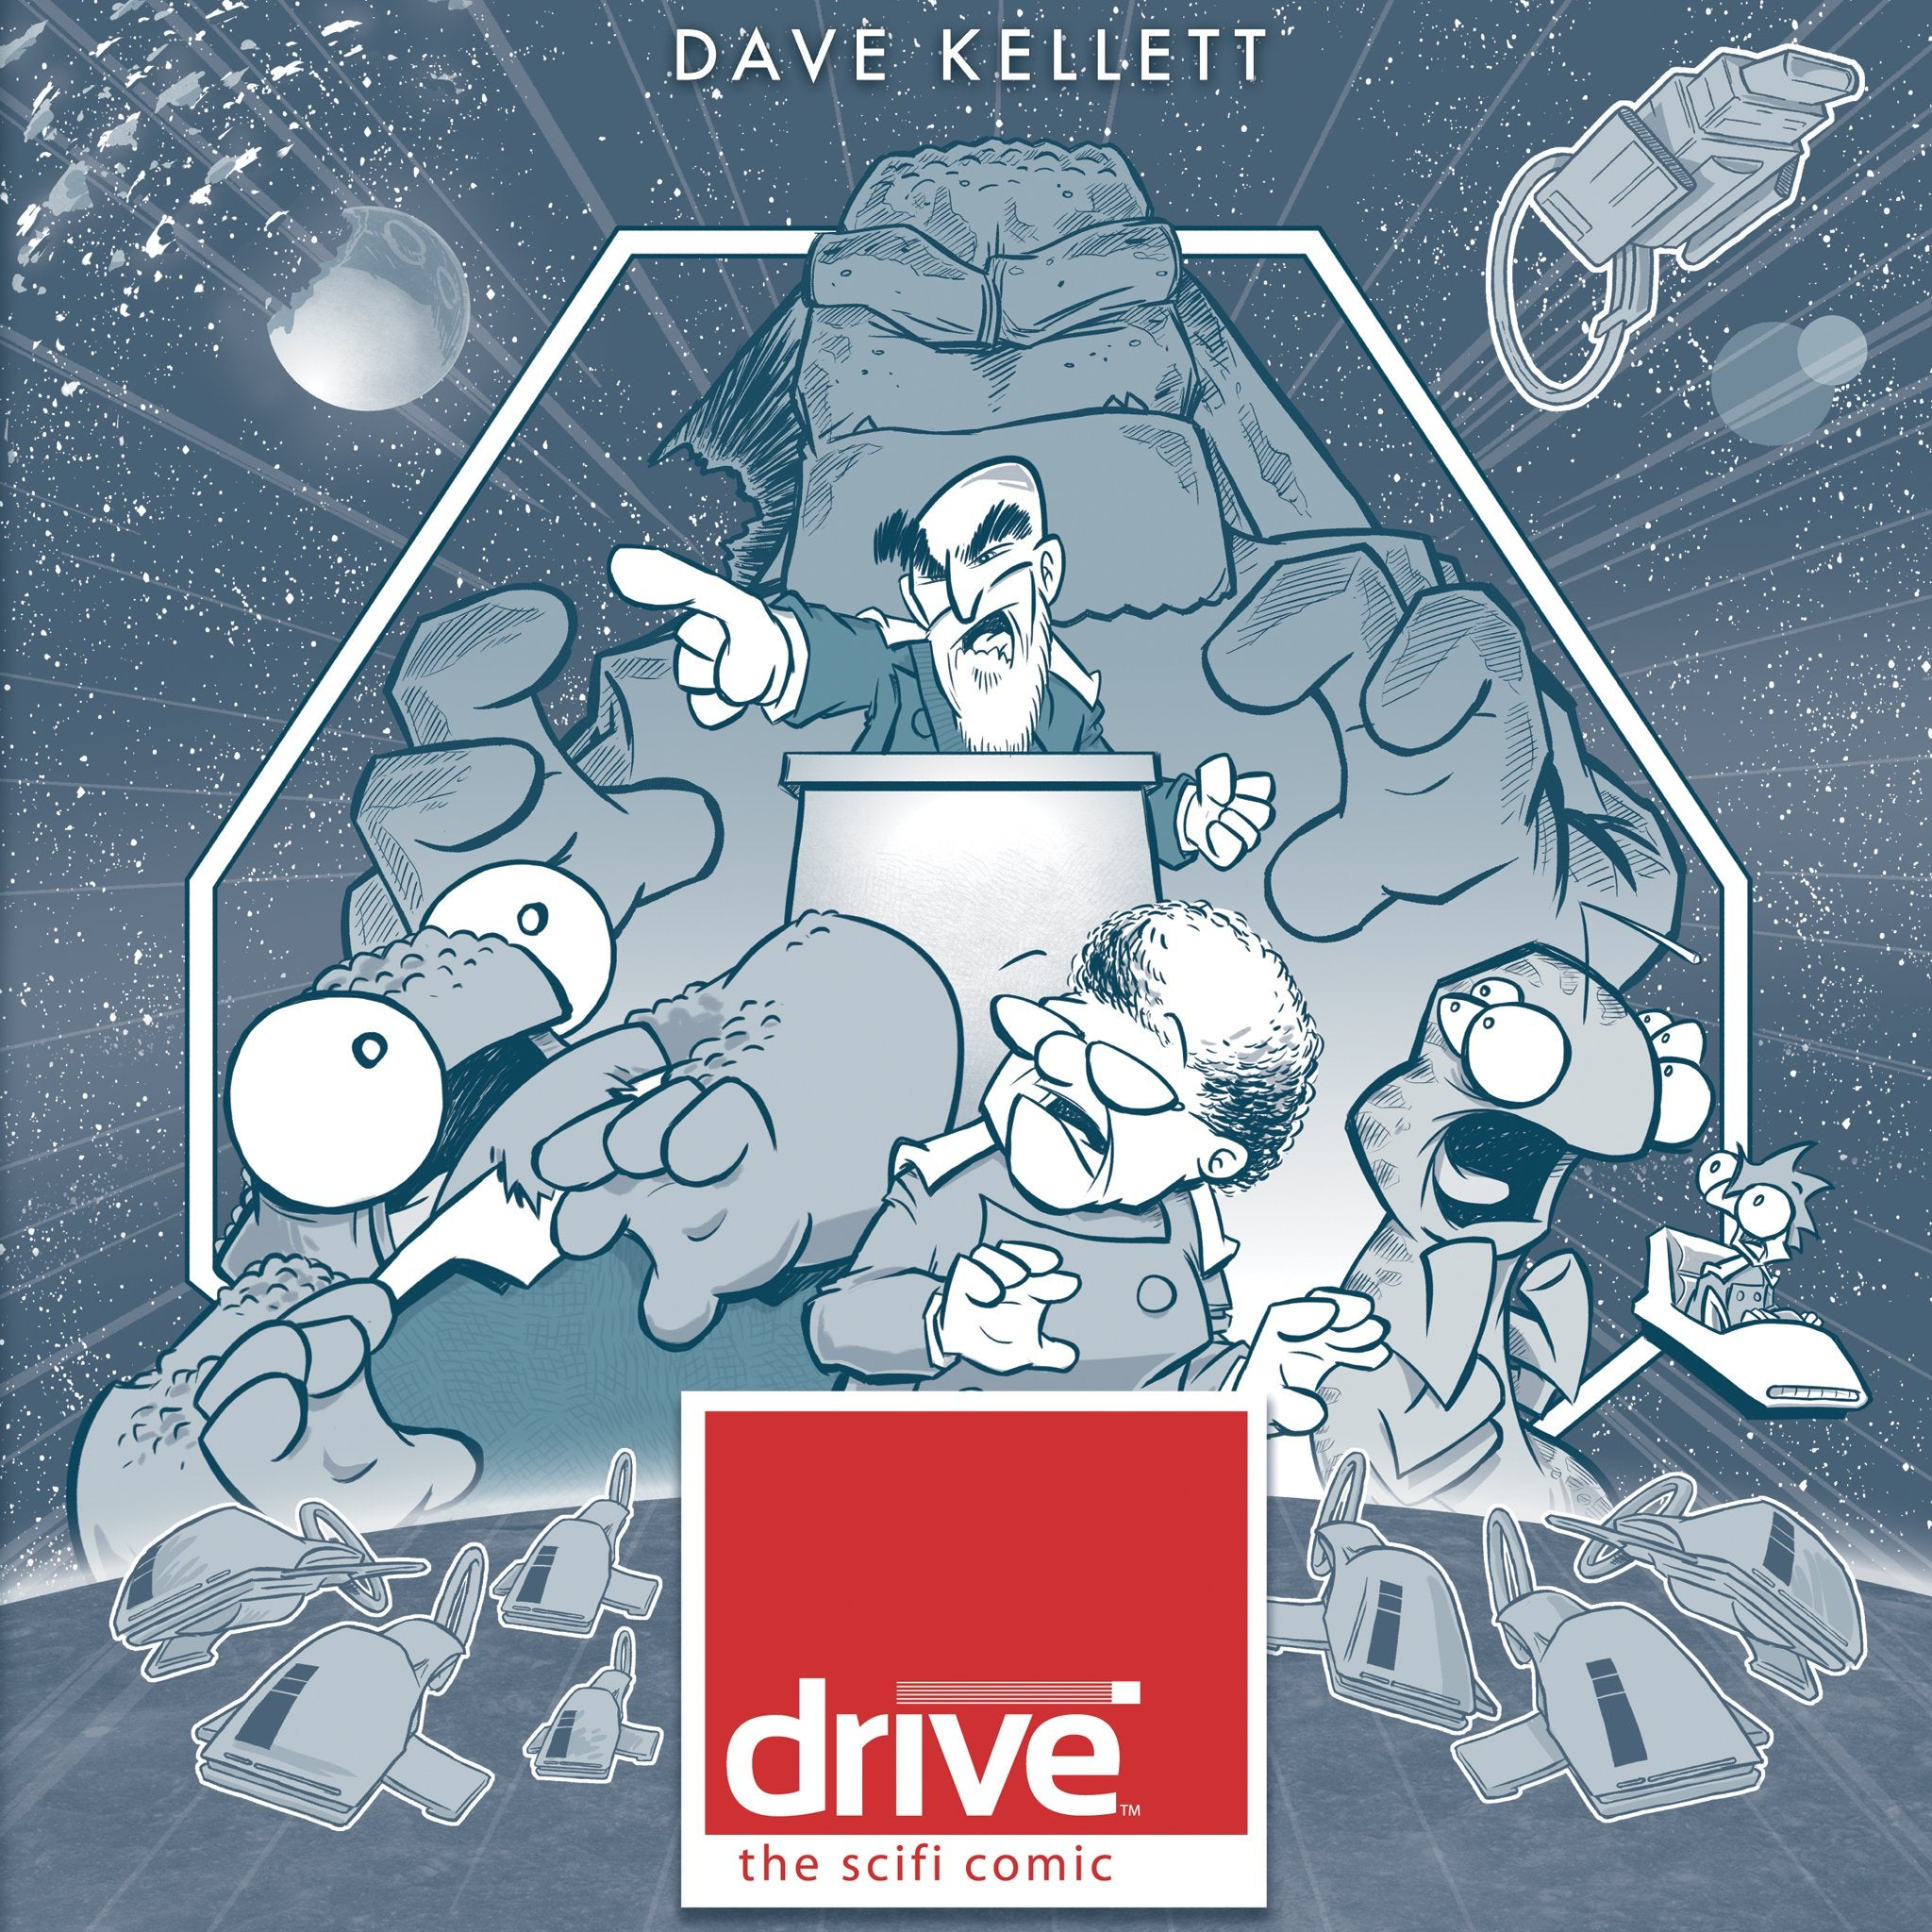 BUNDLE & SAVE: Drive Act 1 & 2 Hardcovers!